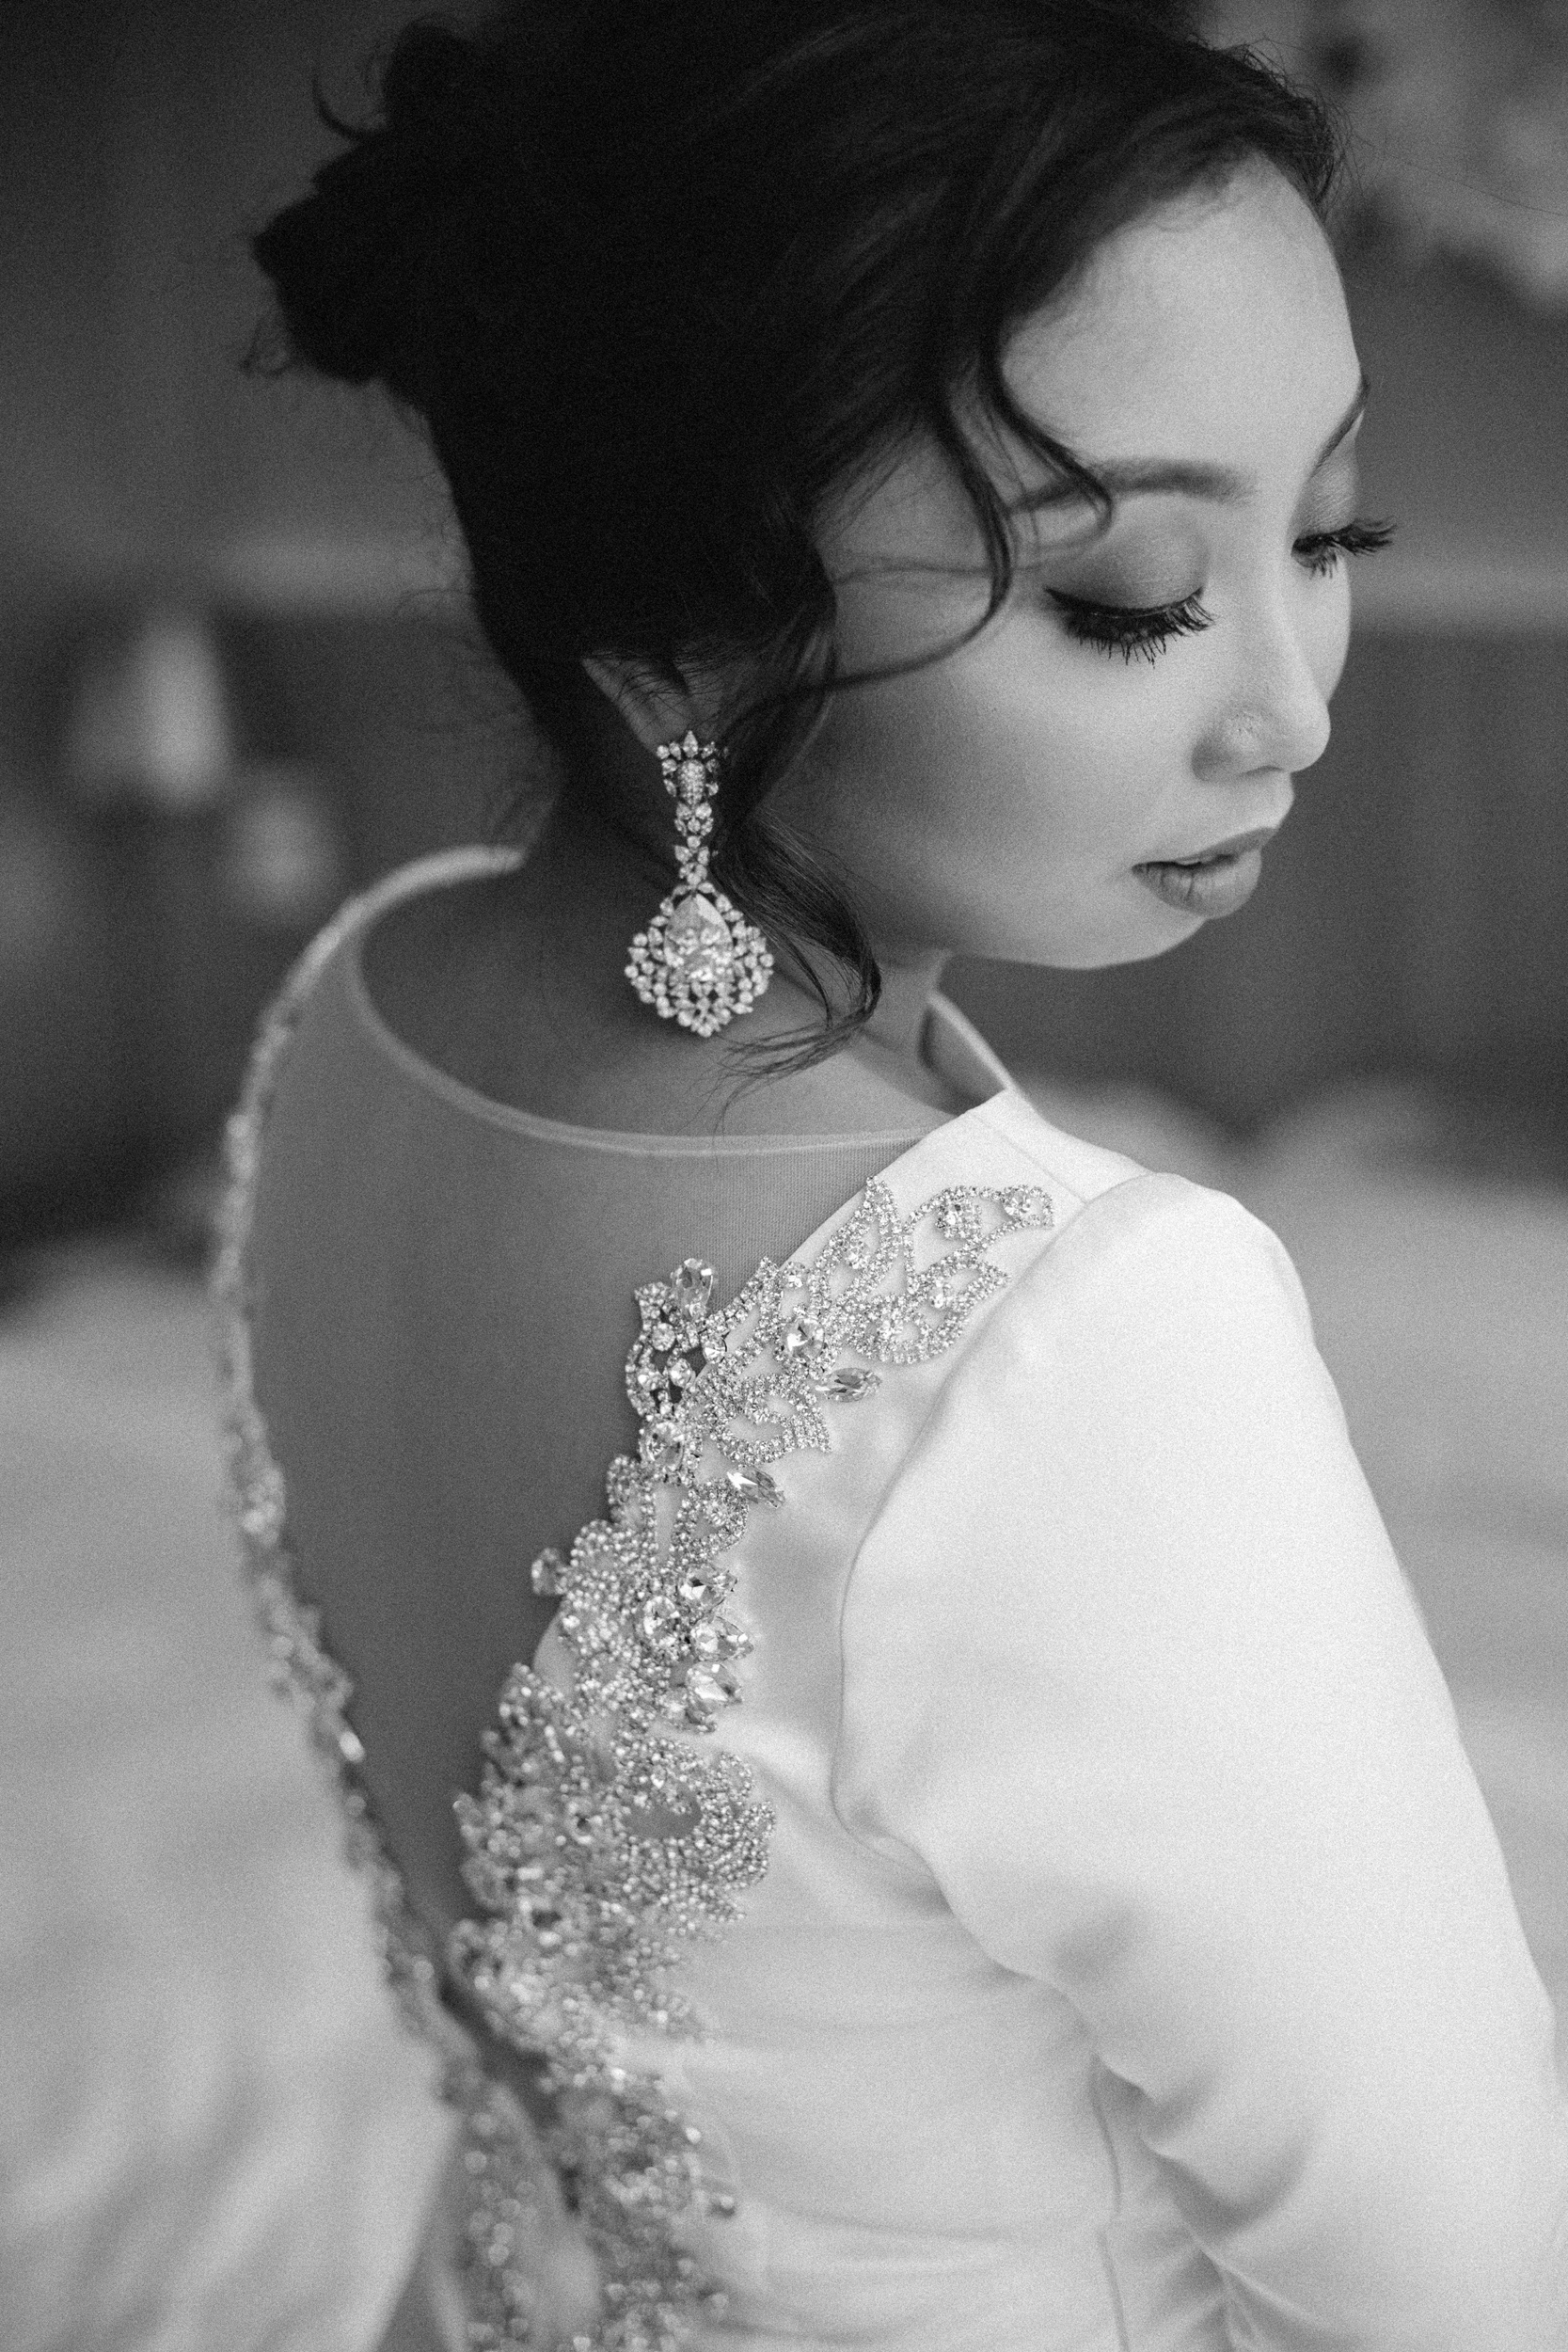 singapore-wedding-photographer-dinah-sam-wemadethese-44.jpg